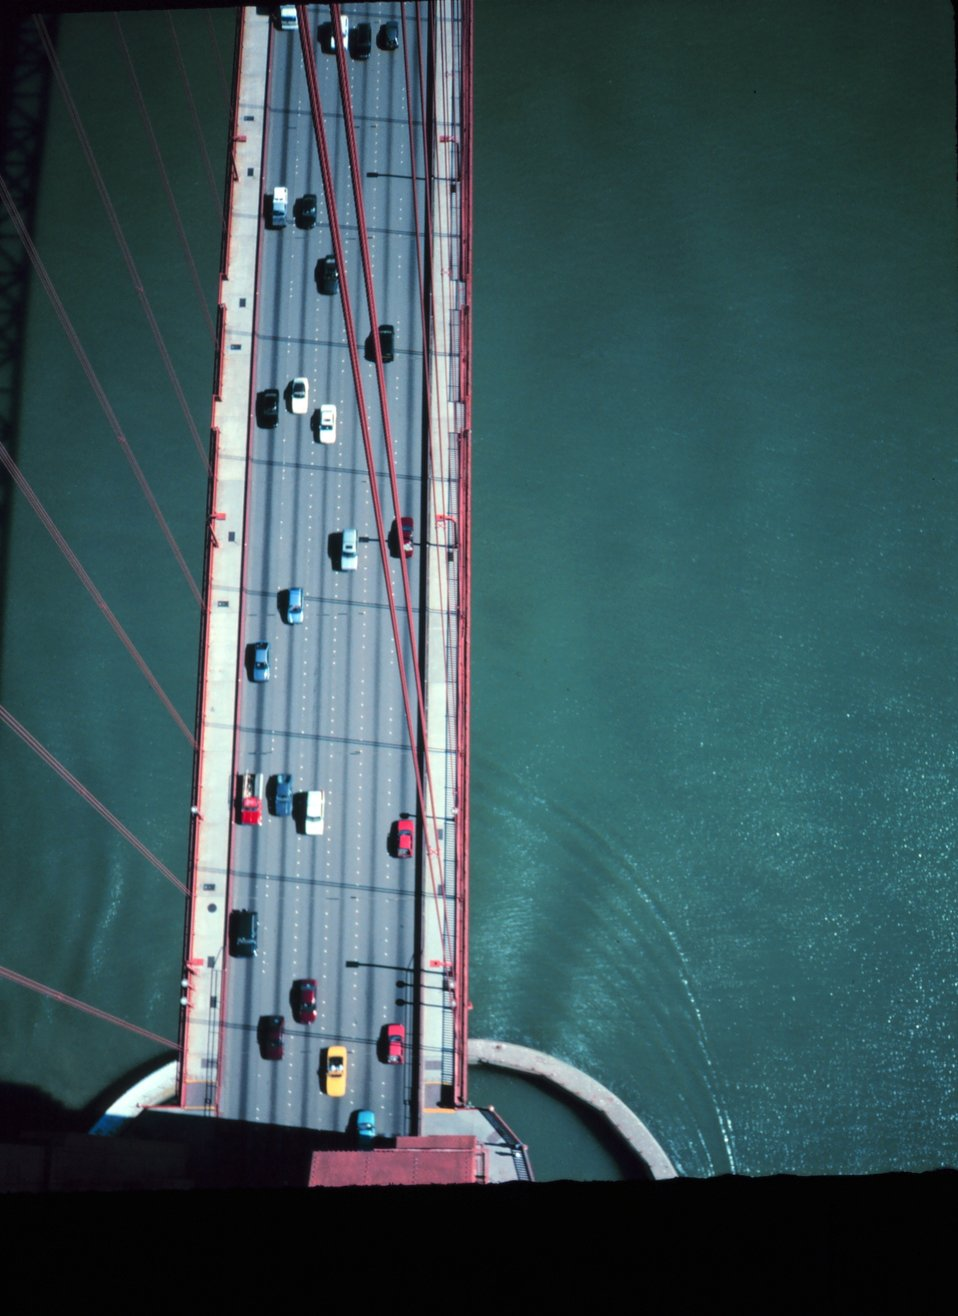 View from the top of the south tower of the Golden Gate Bridge looking down onto  the deck of the bridge.  The surface of the water is more than 700 feet below.